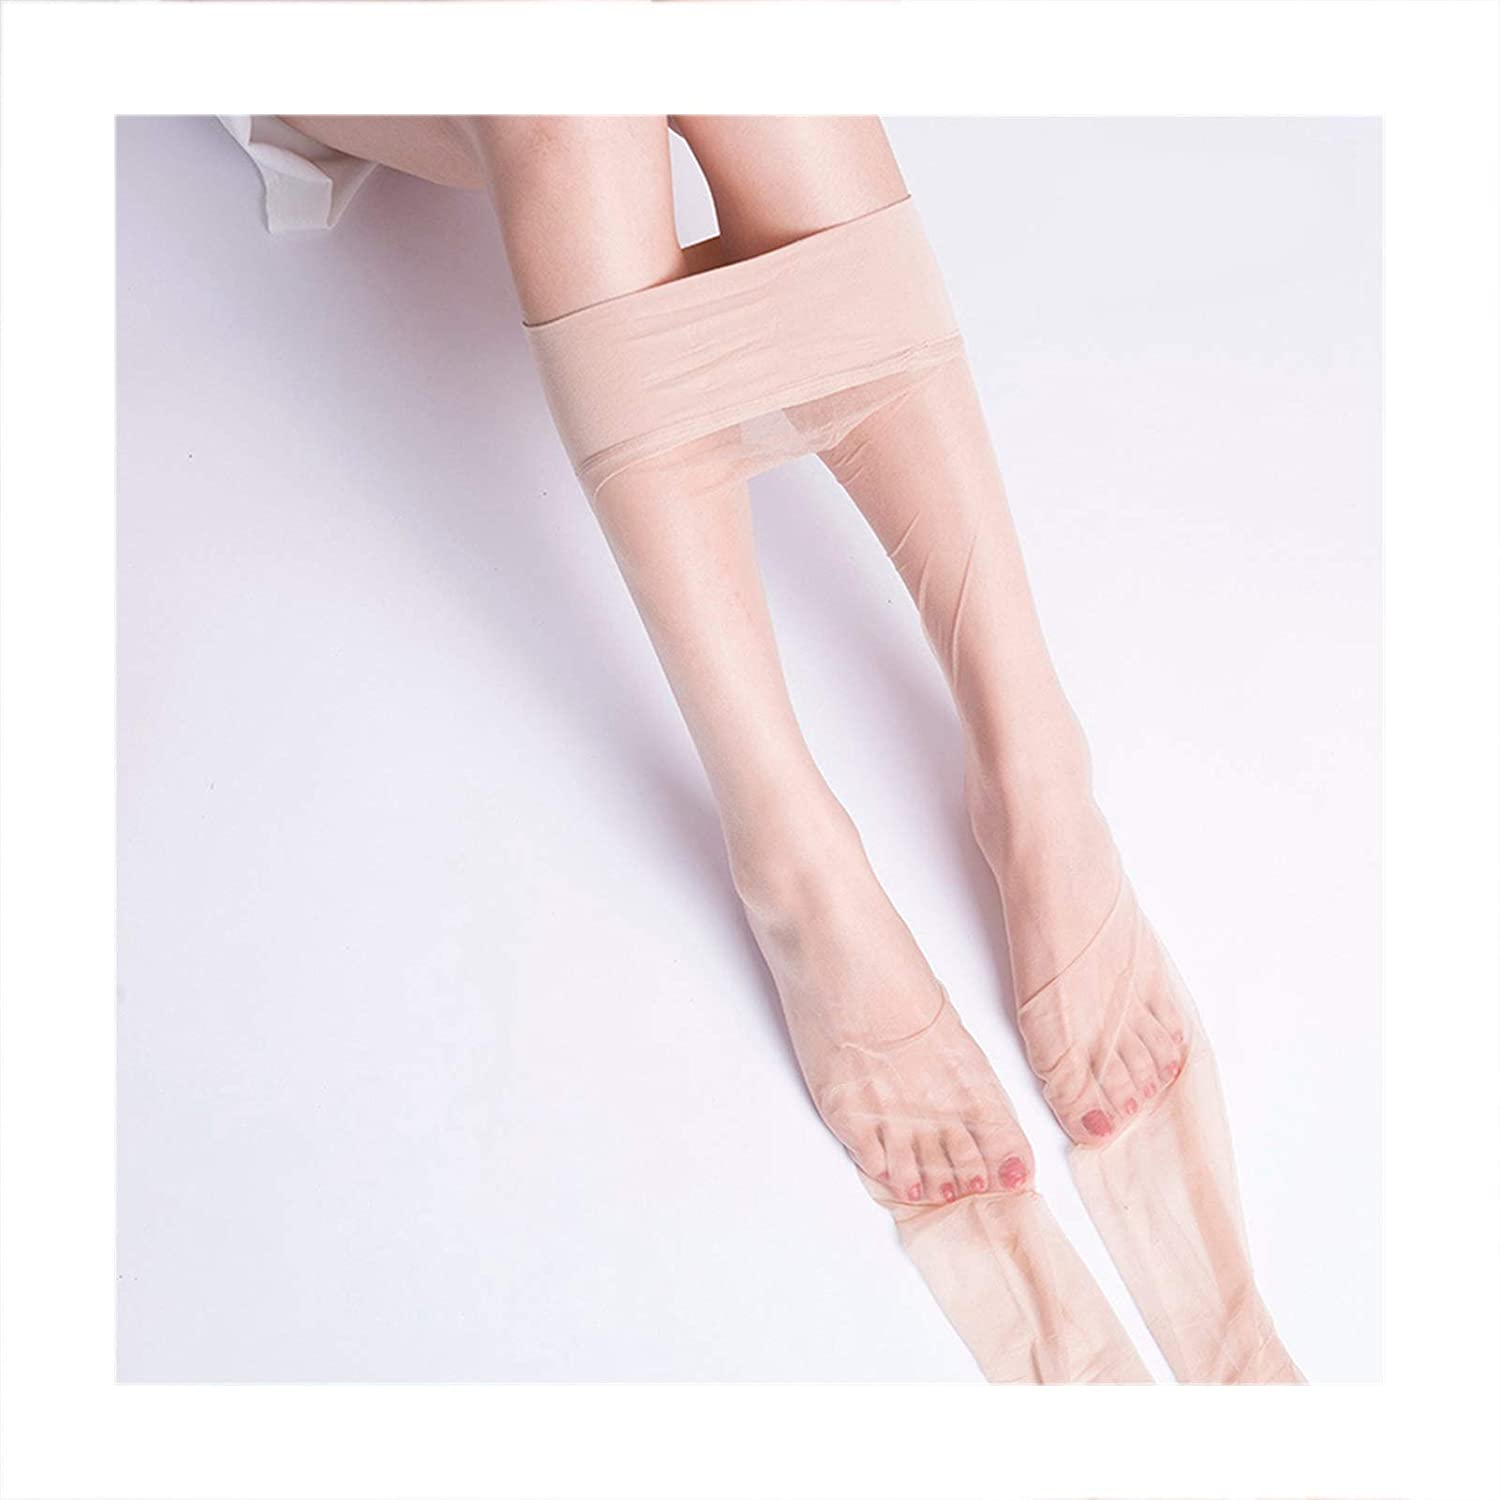 Linyuex Sexy Women's Toe Transparent Traceless Pantyhose Seamless Stockings Nylon Ultra Thin Stretch Tights Sexy Lingerie (Color : Pink Skin)